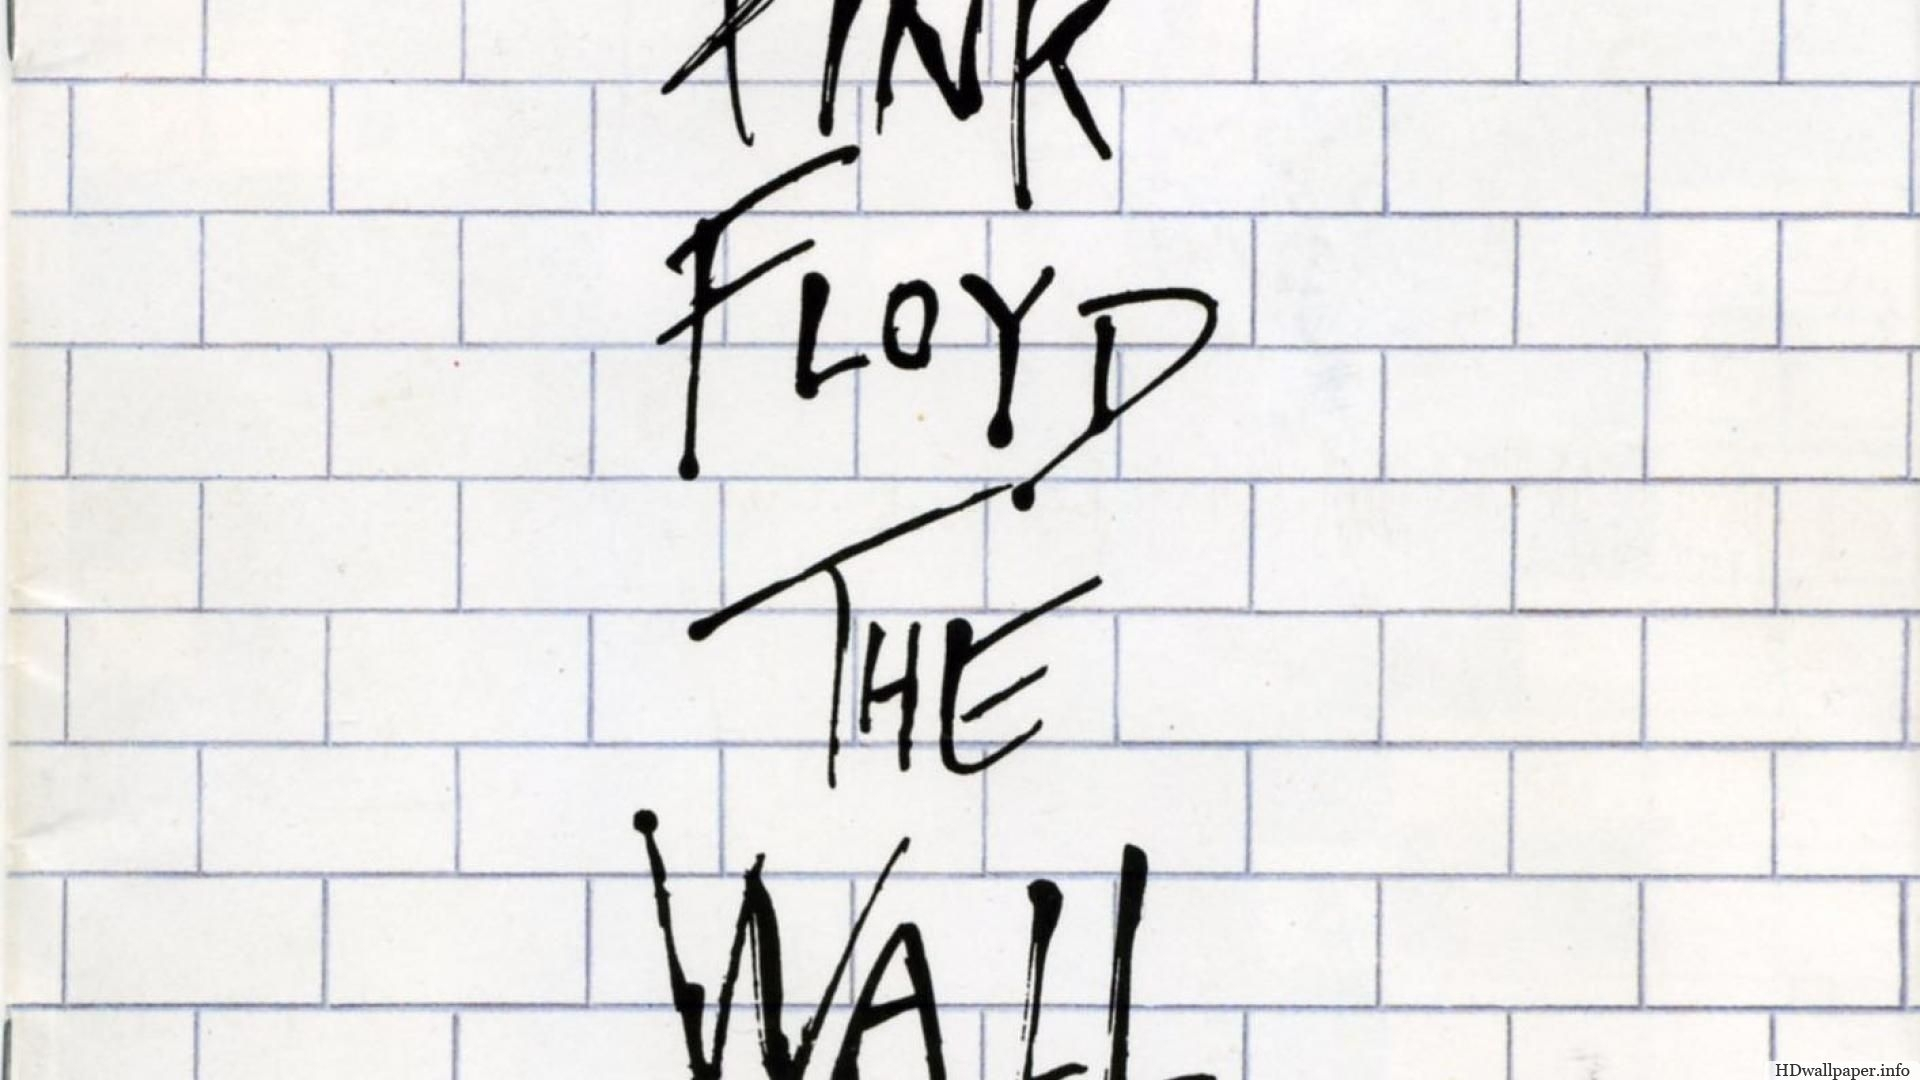 pink floyd the wall wallpaper hd - http://hdwallpaper/pink